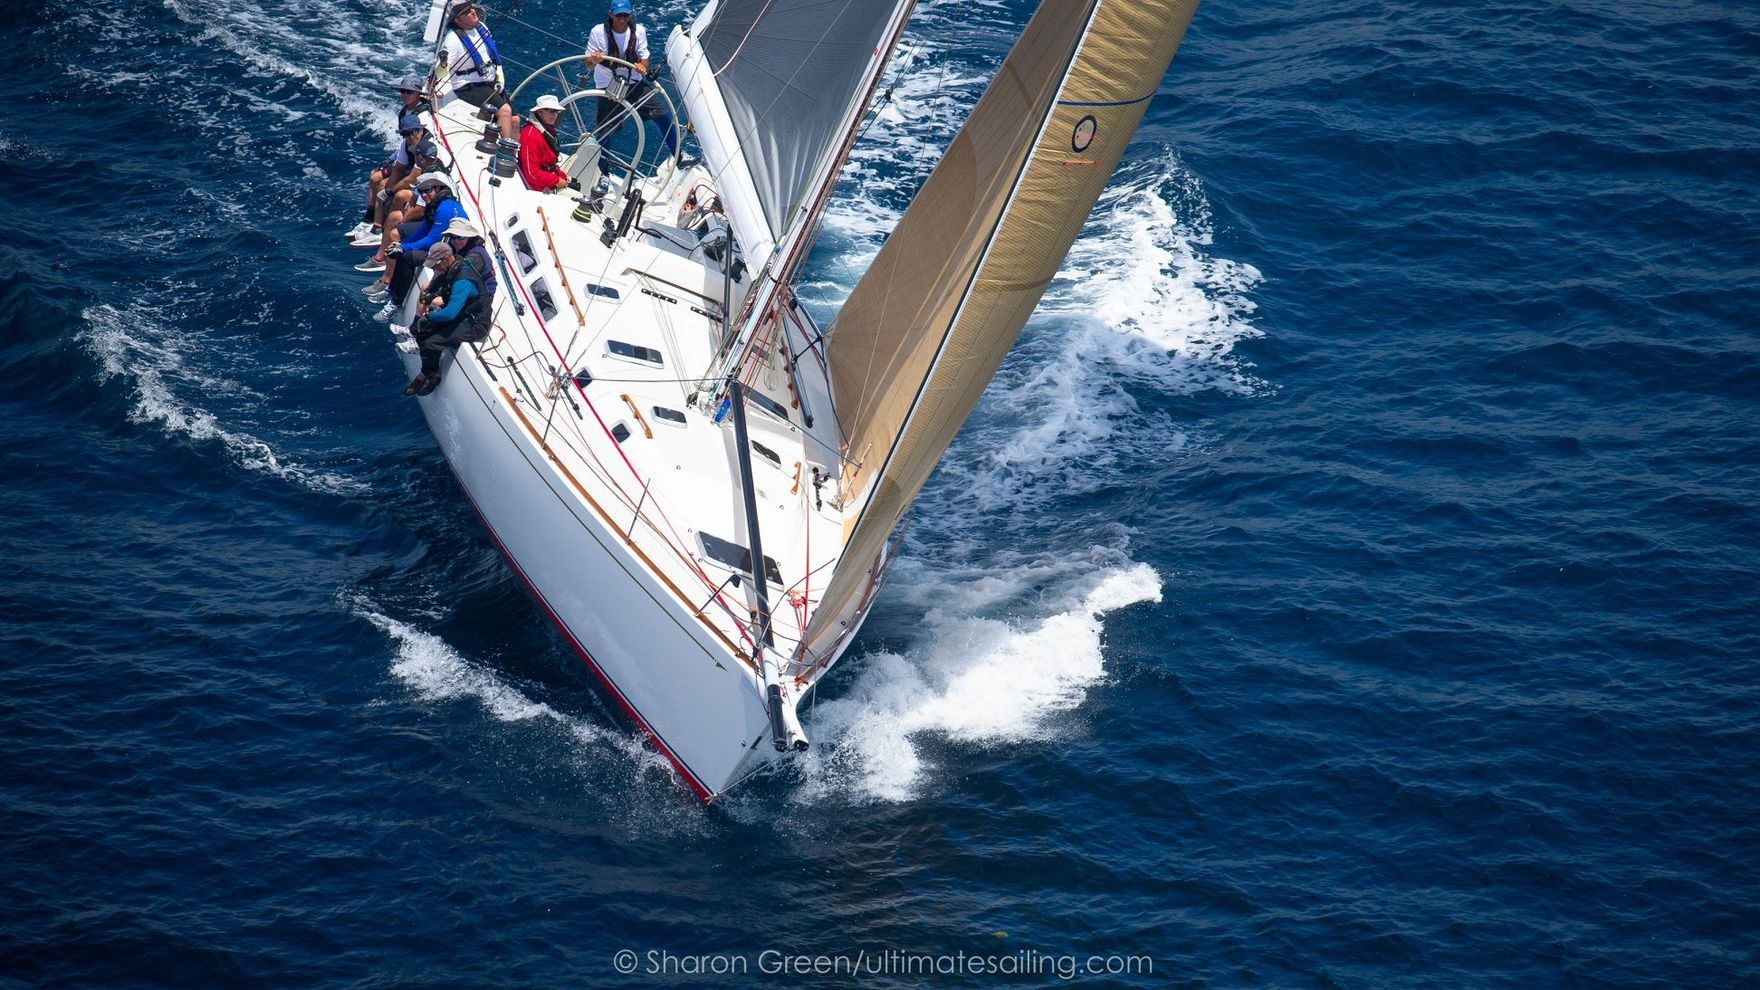 Transpacific Yacht Club's race 2021